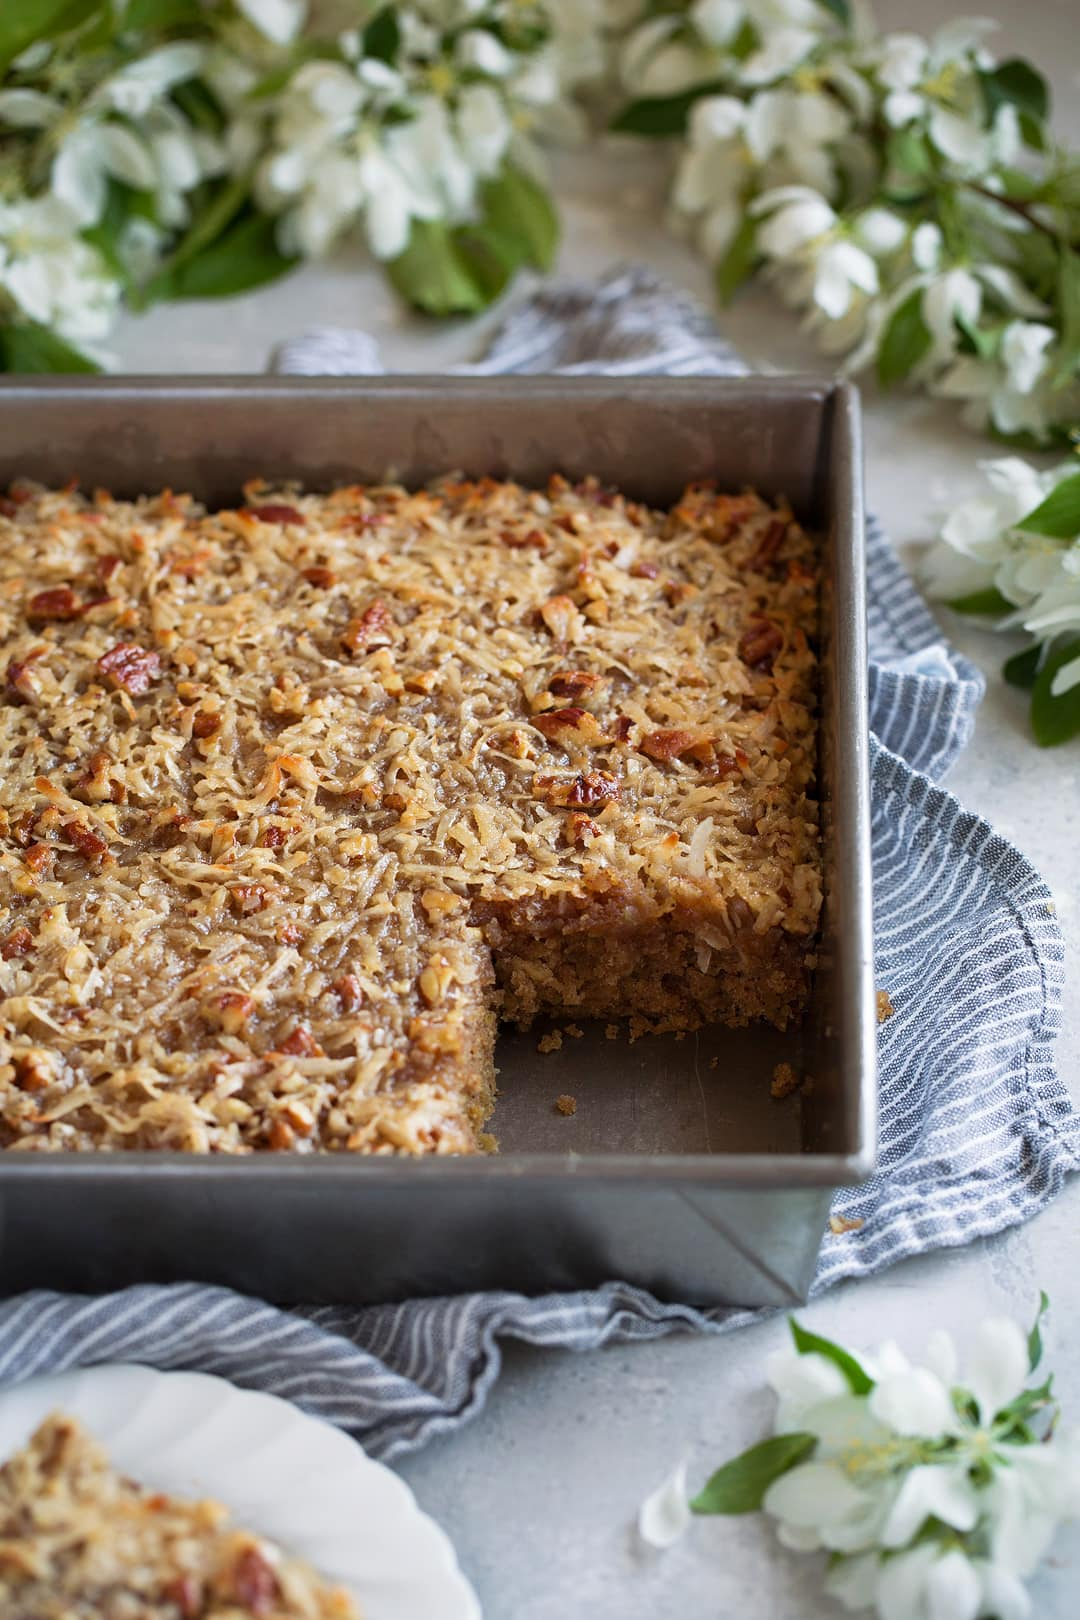 Oatmeal Cake in 9 by 9-inch pan